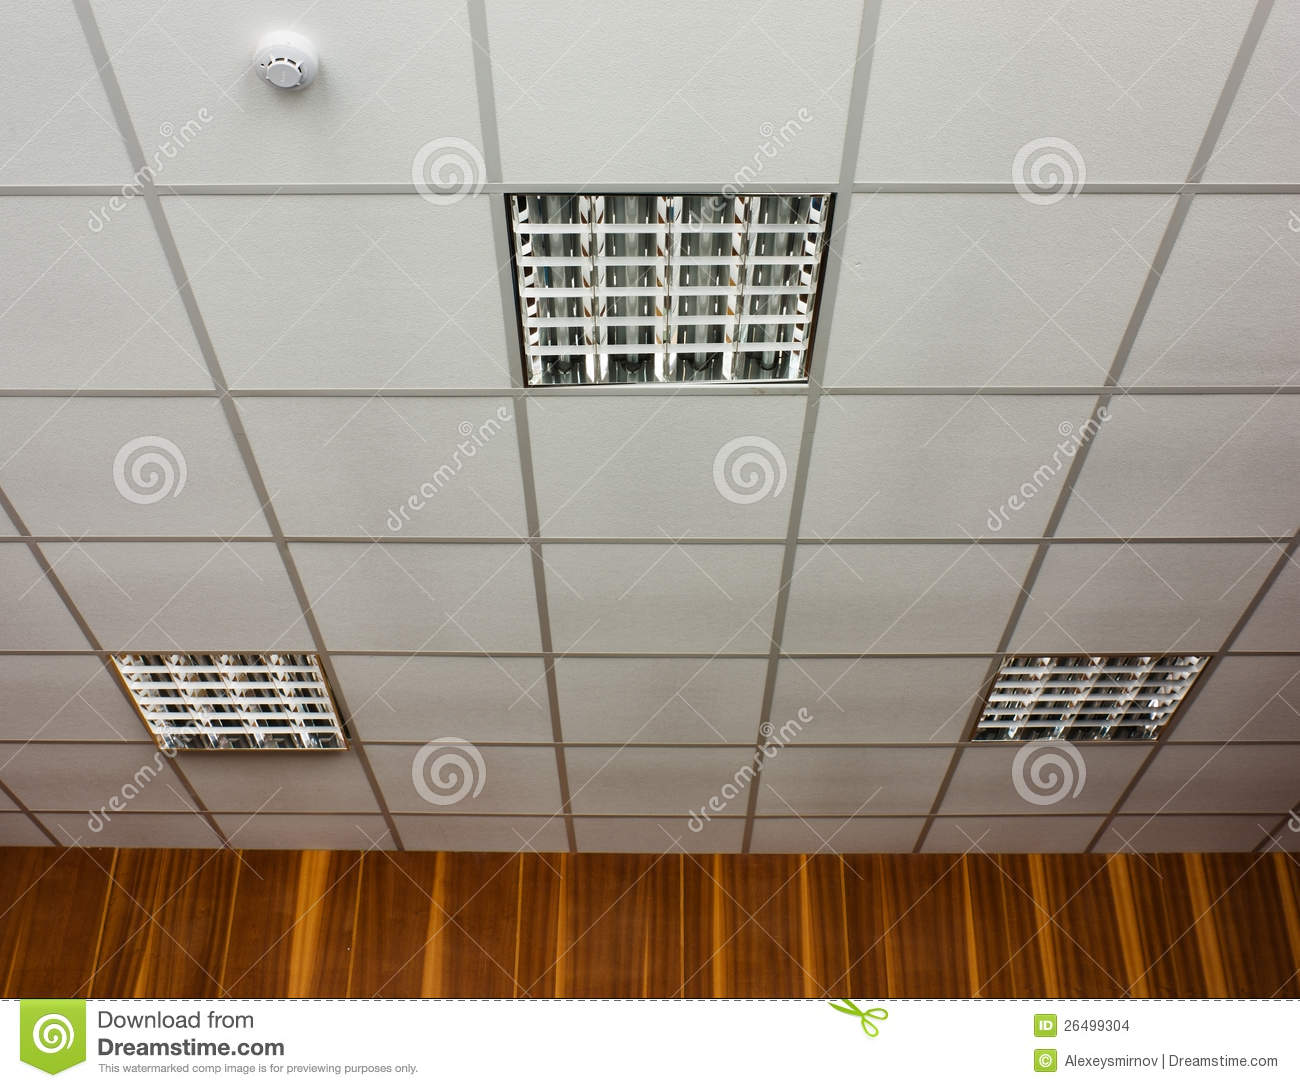 Ceiling clipart ceiling lamp Office with clipart: ceiling ceiling